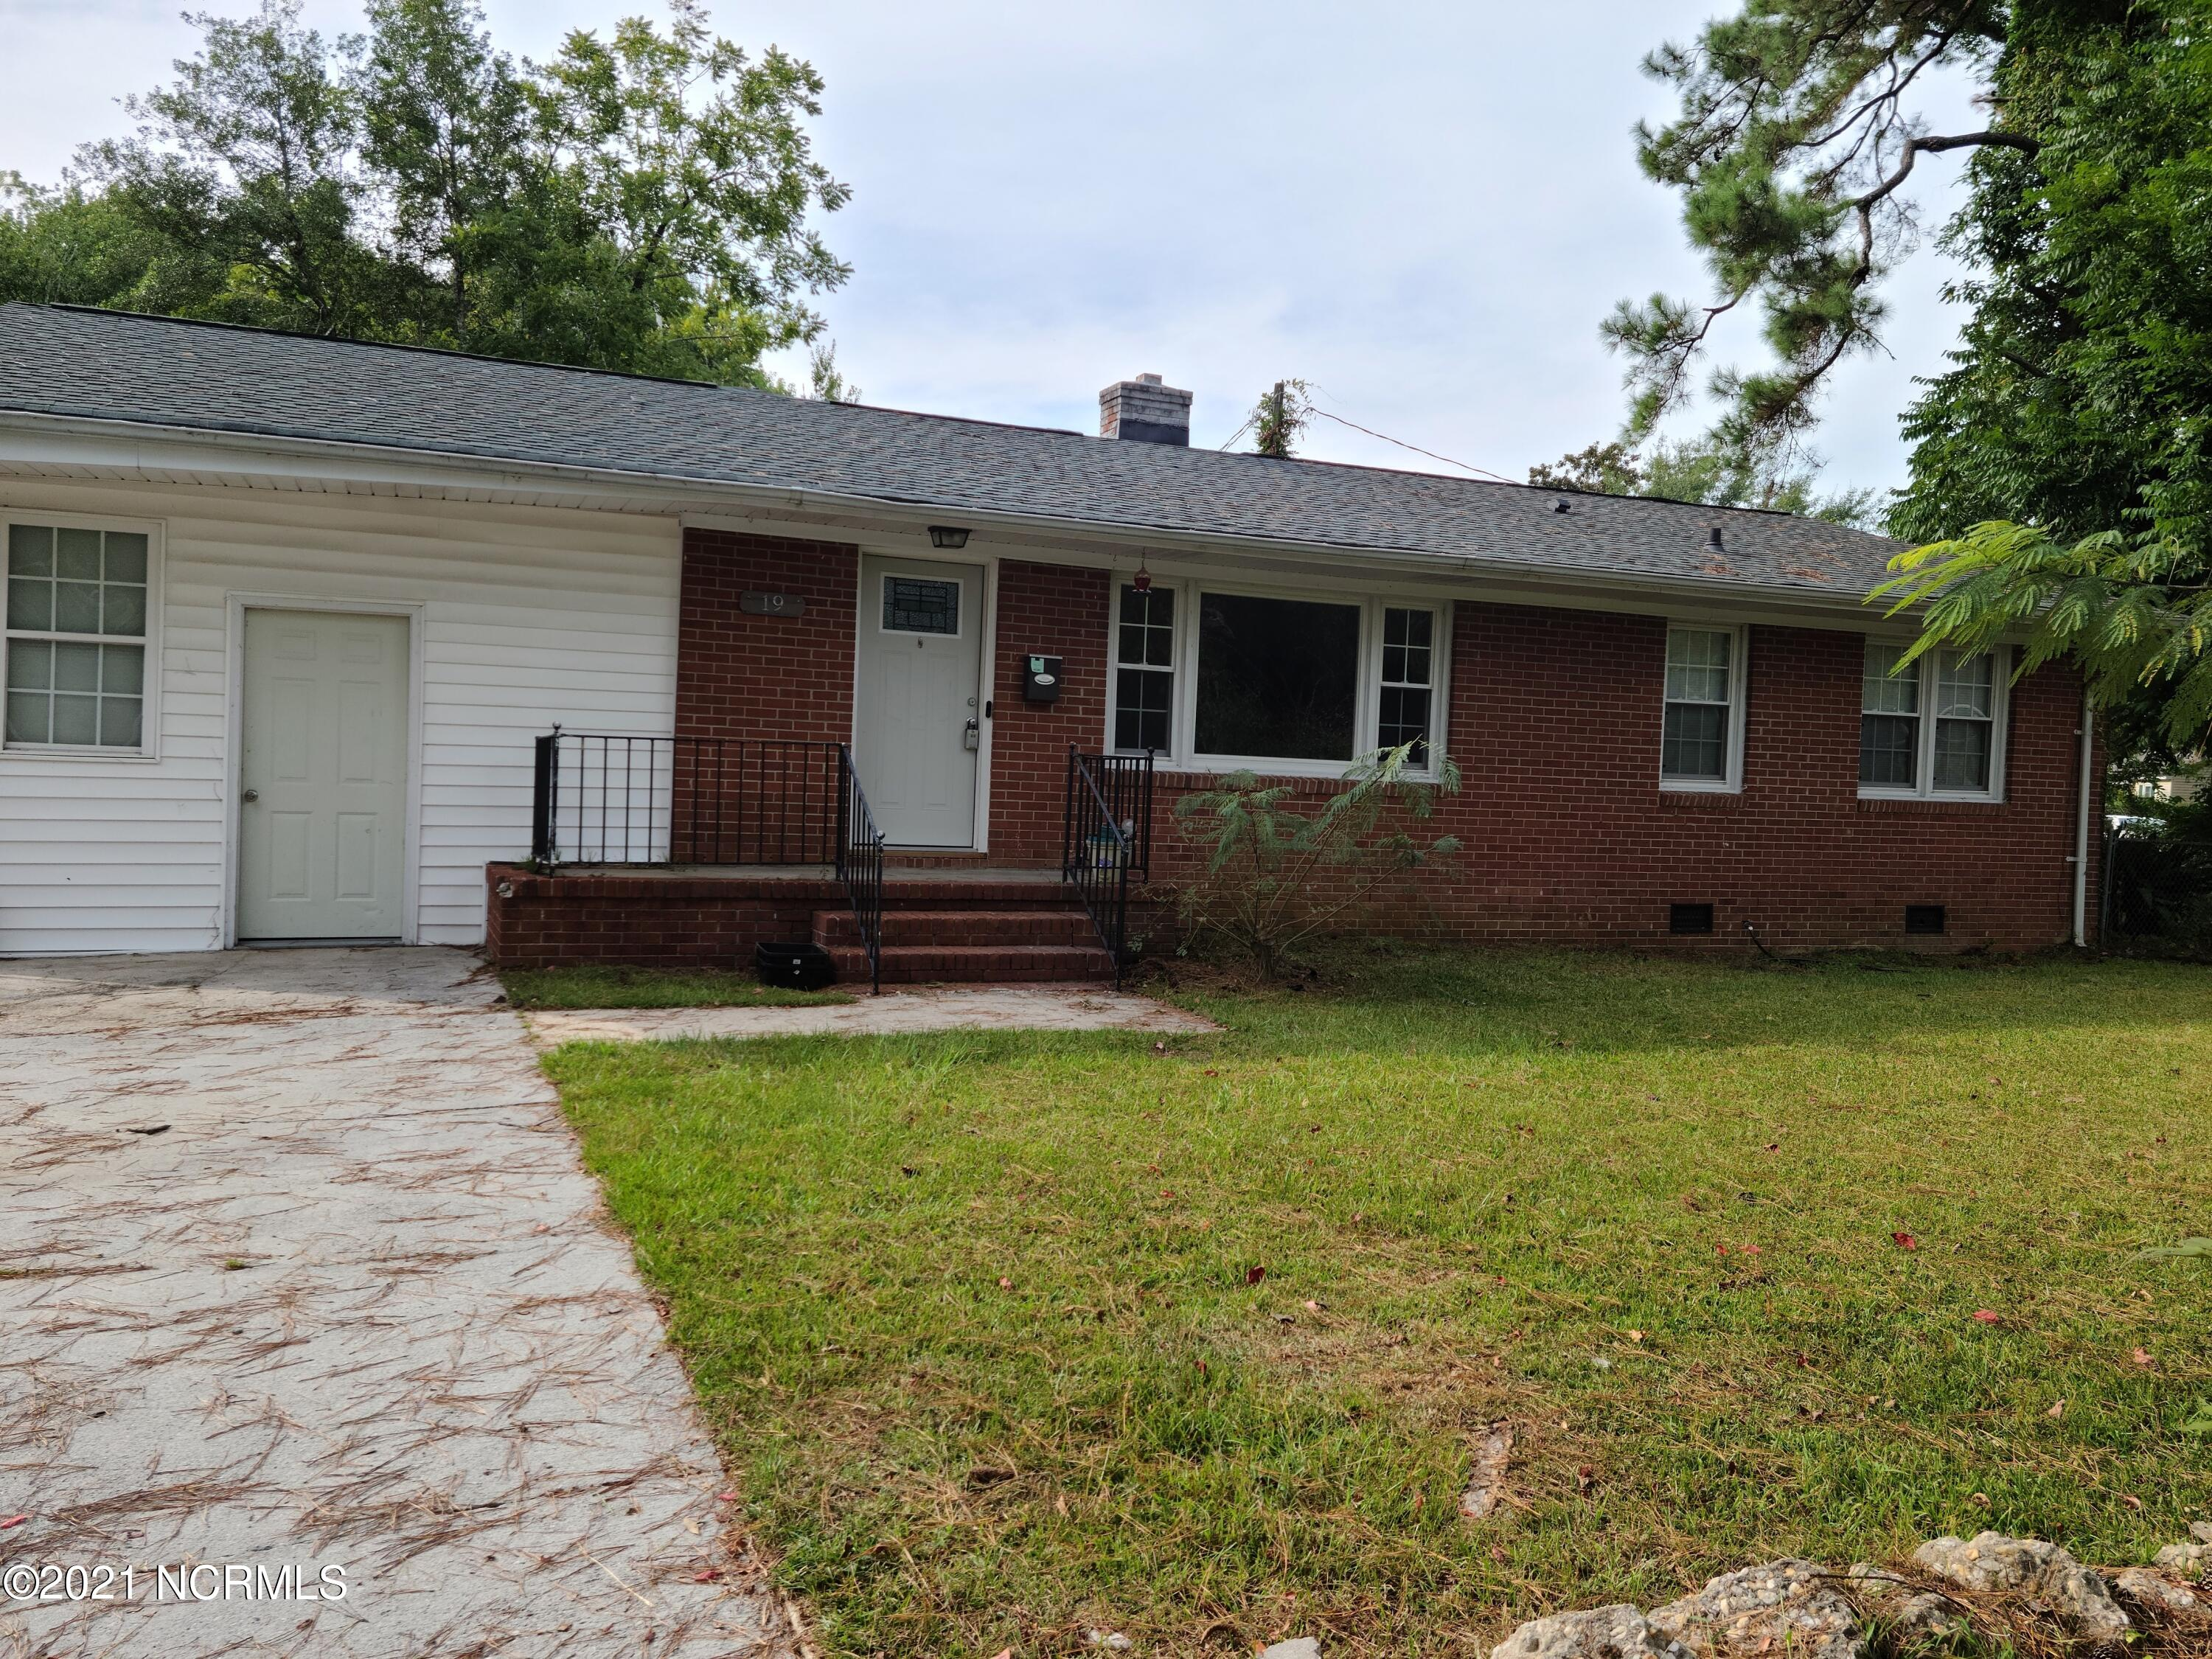 Located in the Jacksonville City Limits in OakGrove Subdivision, 3 bed, 1.5 bath, On a Large Corner Lot could be your dream home or a stop along the way. Back yard is fully fenced so the kiddos or pets can play. The home boast approxmatley 1649 HtSQFt  of living space there is even a storage building out back to keeo your yard toys or lawn equipment, Schedule your private viewing today.